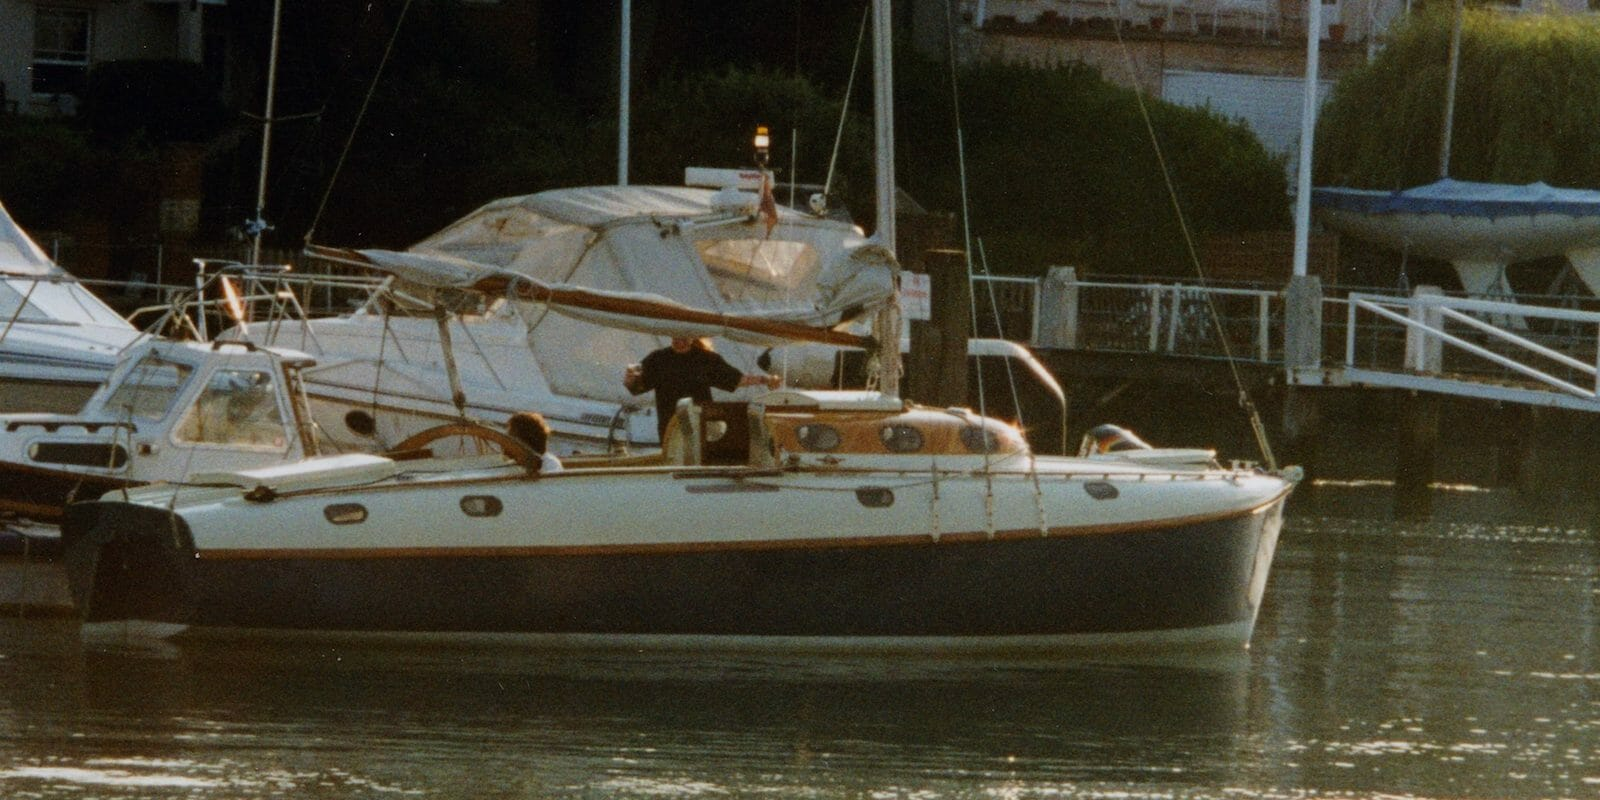 A165 at Cowes Corinthina YC for Uffa Fox Centenary 14-16 August 1998